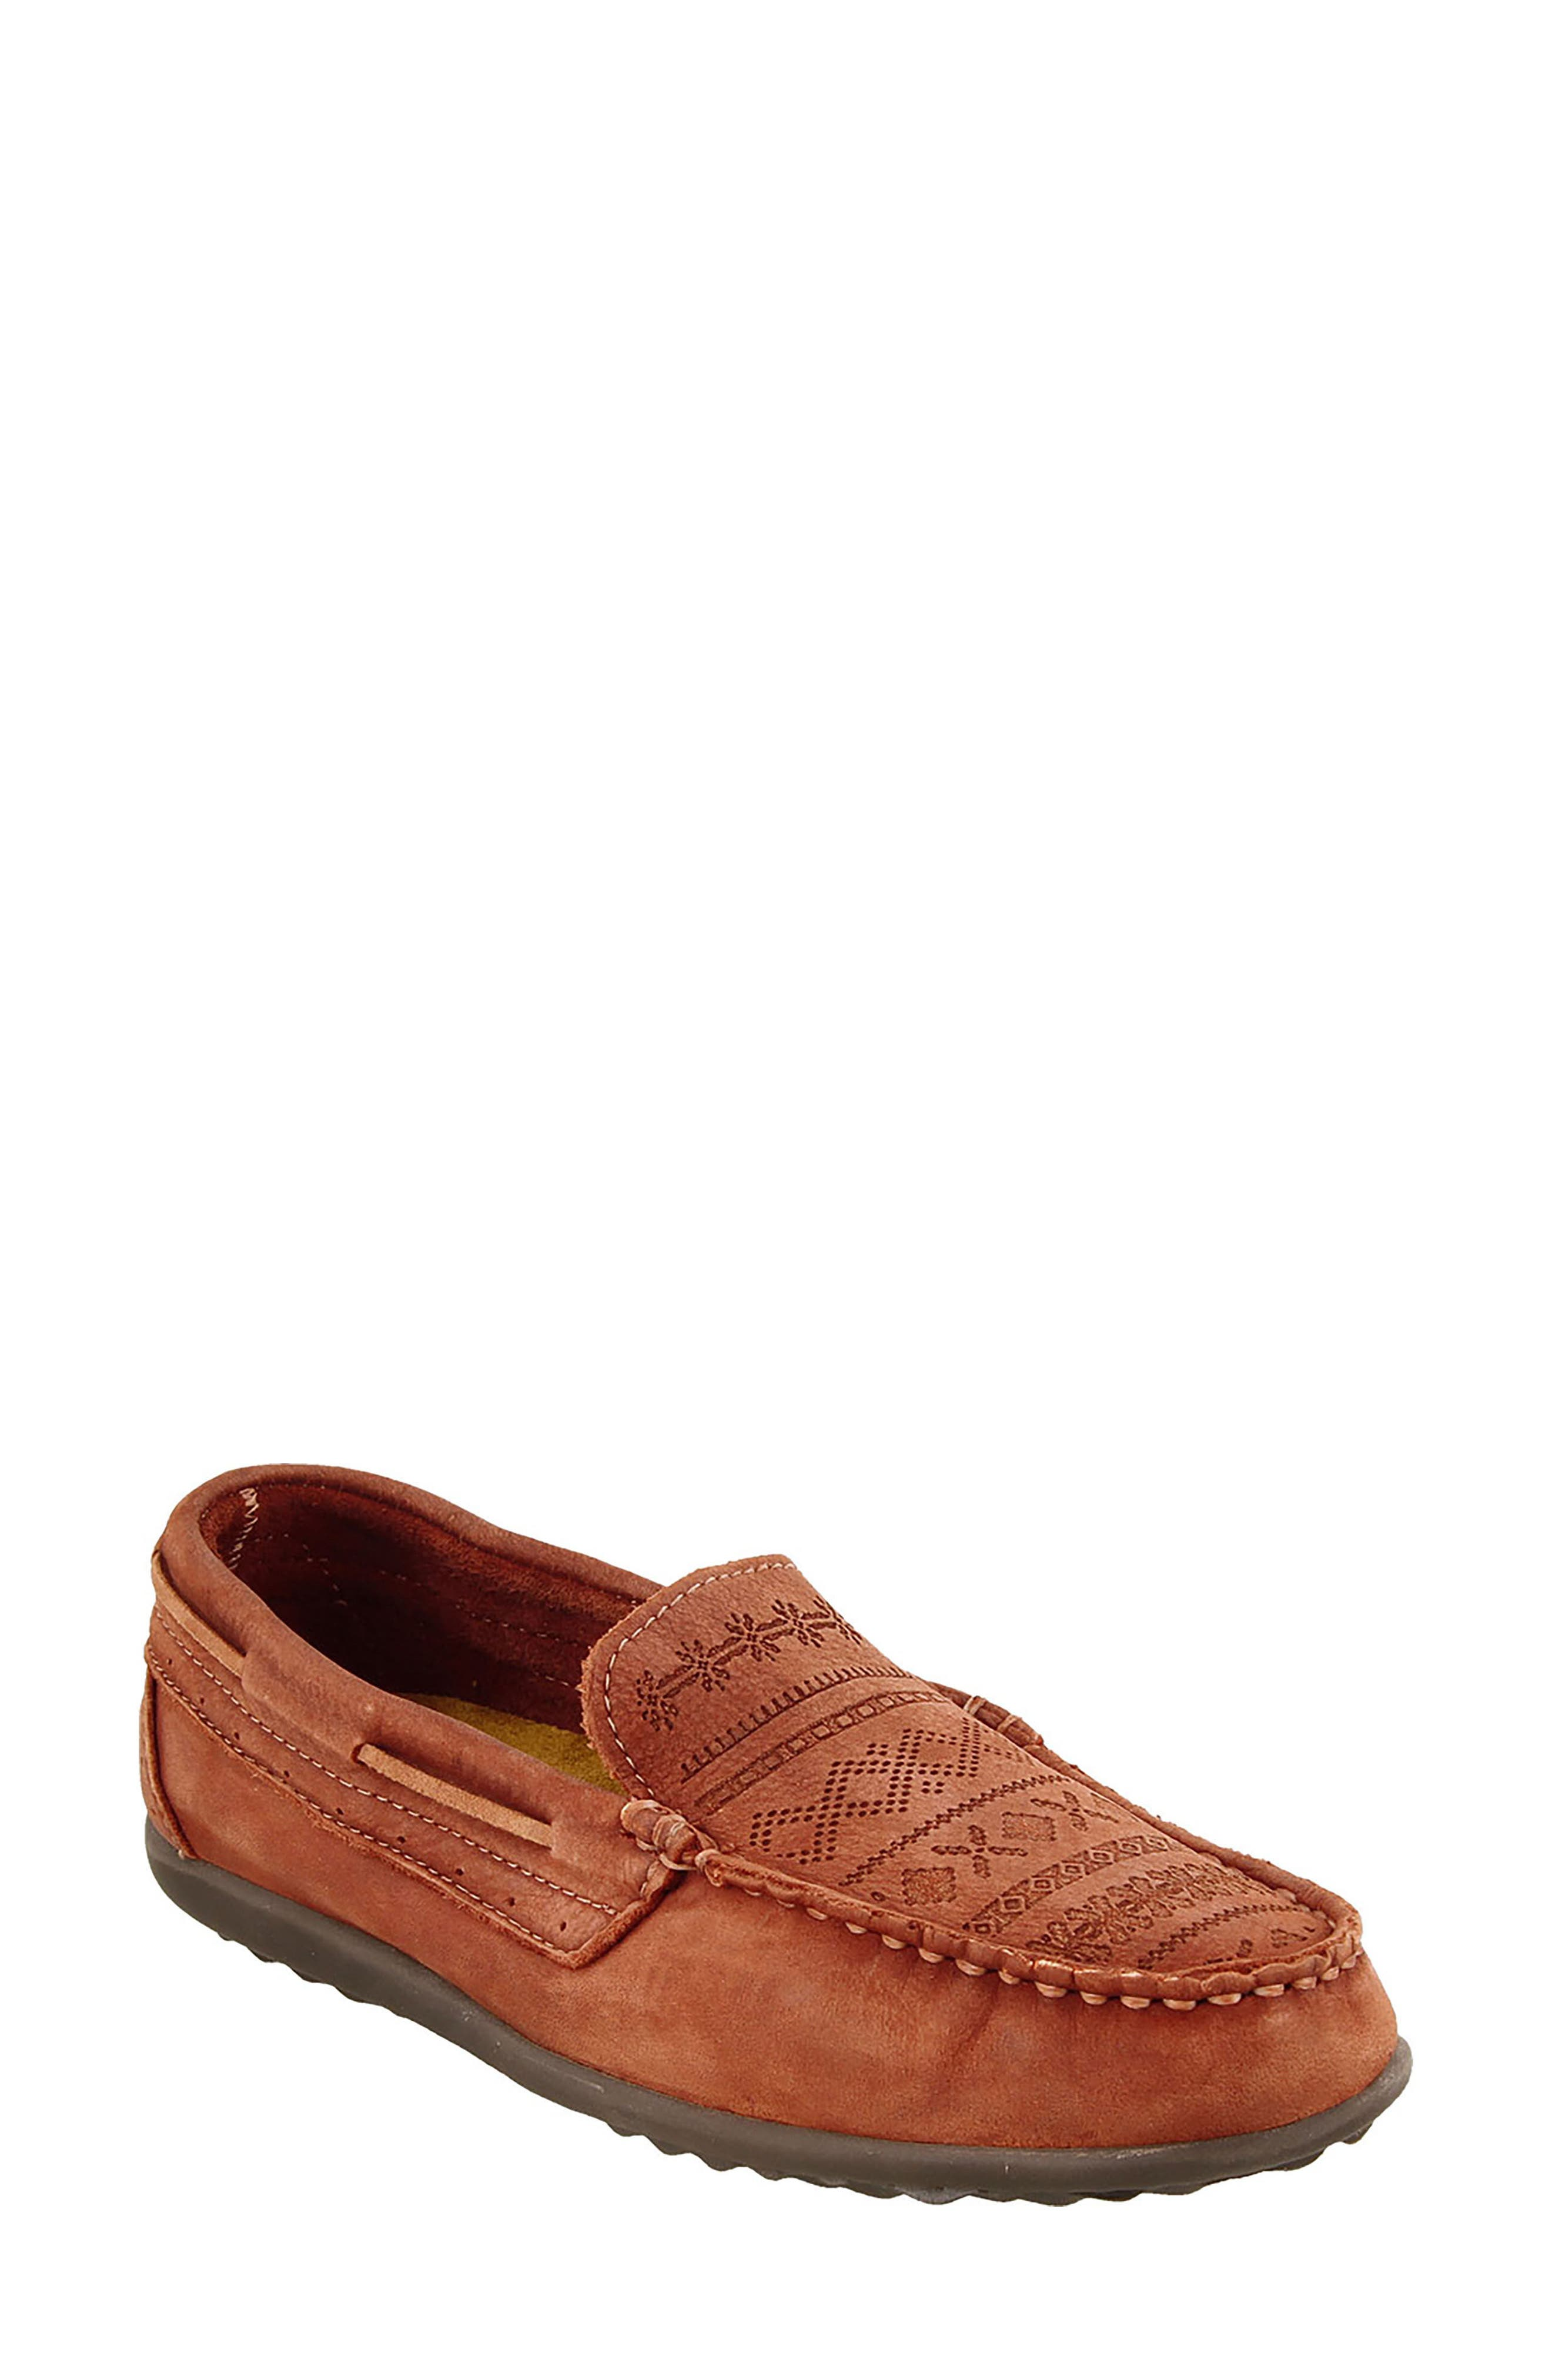 Heritage Moccasin Flat,                         Main,                         color, Spice Red Leather